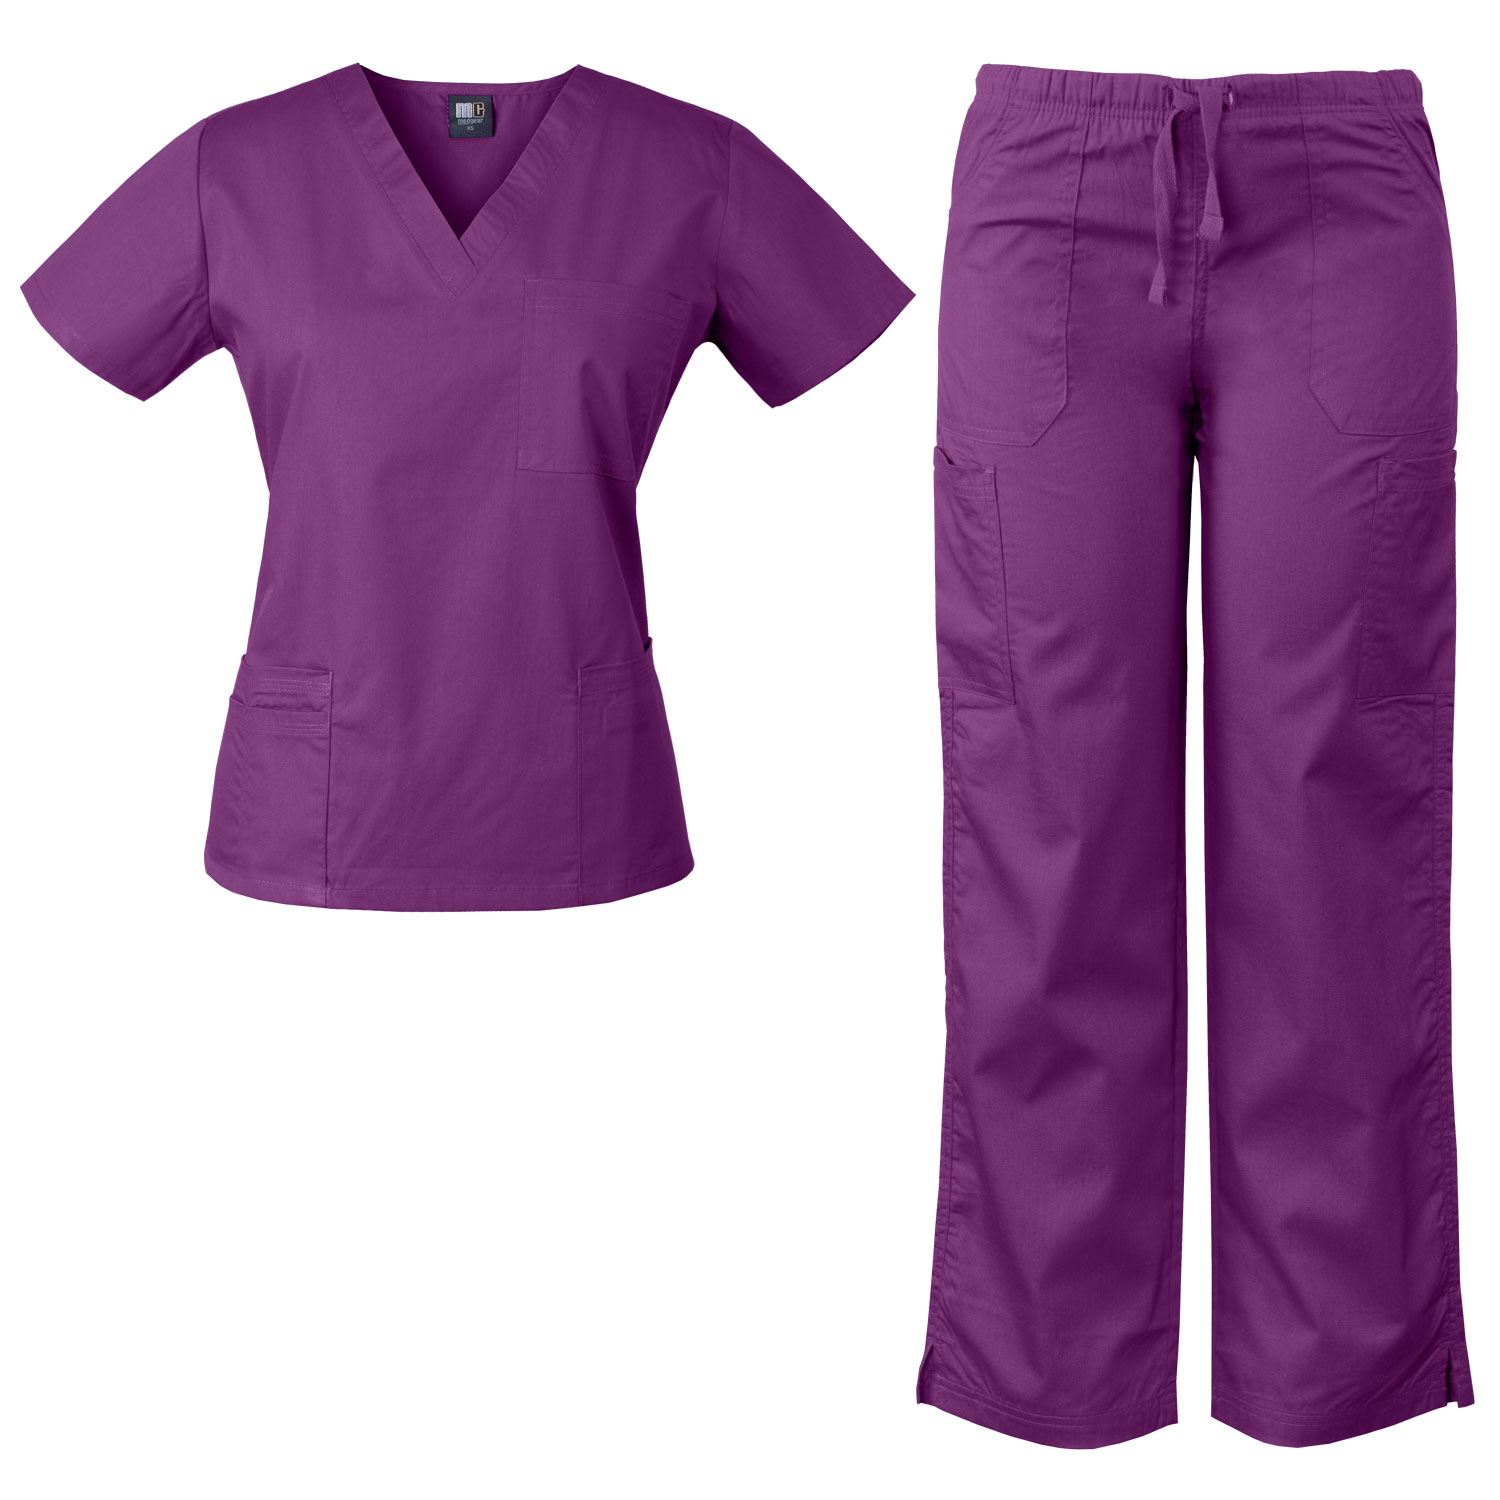 MedGear Womens Scrubs Set Medical Uniform – 4 Pocket Top & Multi-pocket Pants 7891